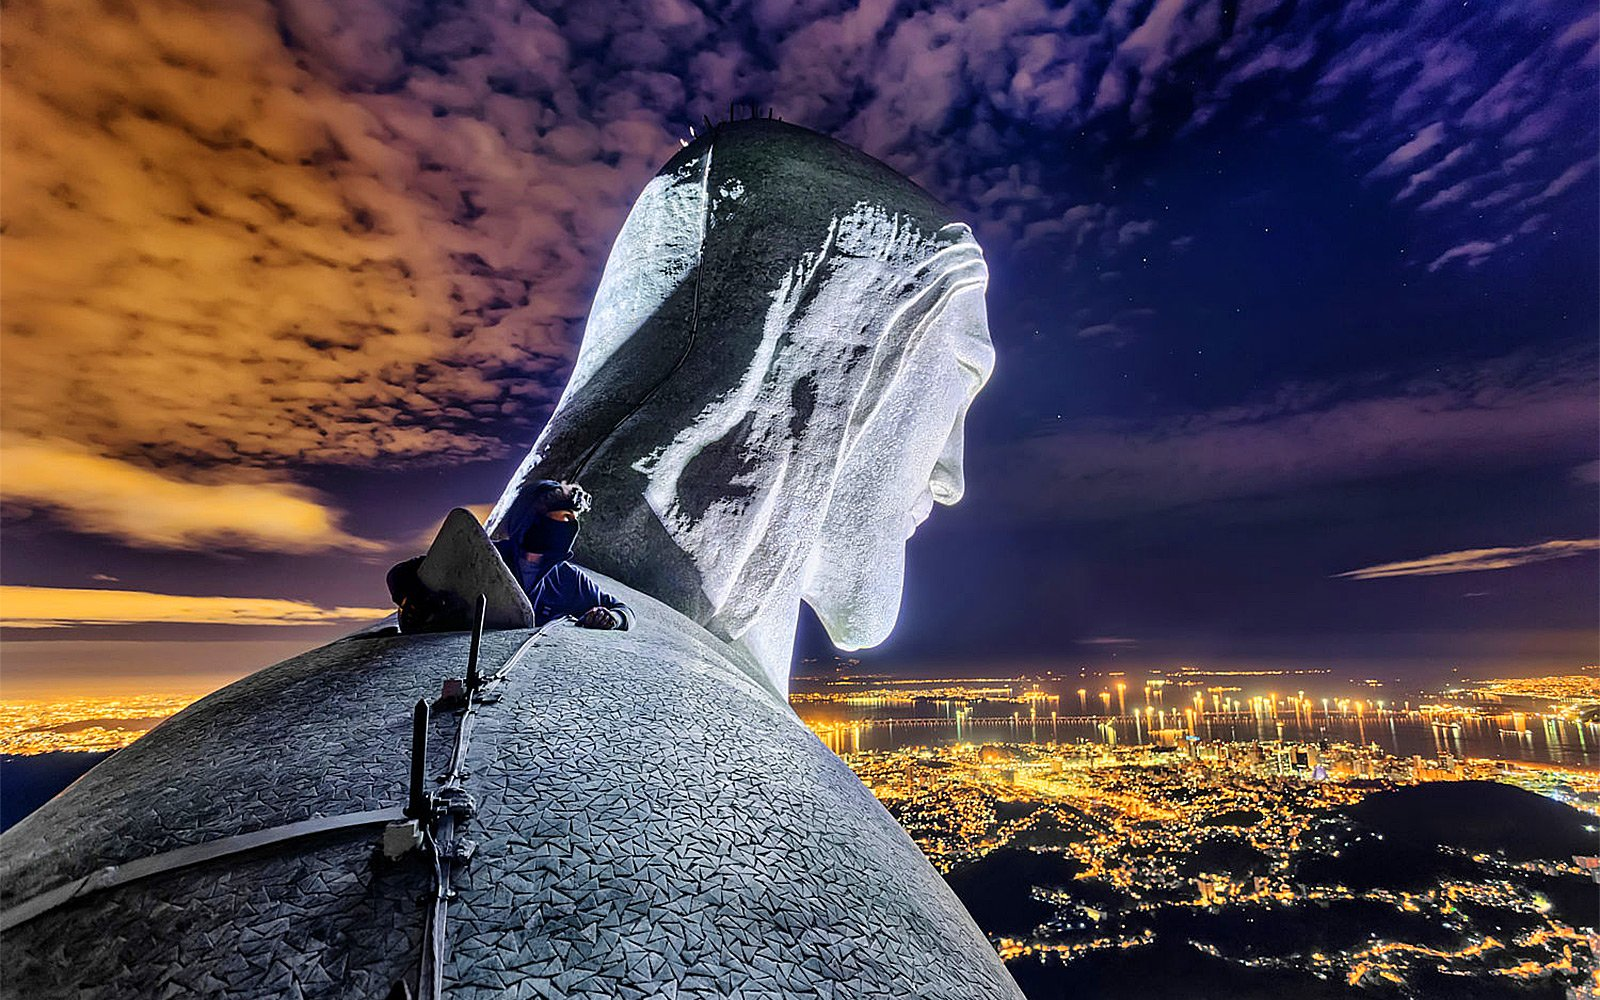 How to climb to the top of the statue of Christ the Redeemer in Rio de Janeiro